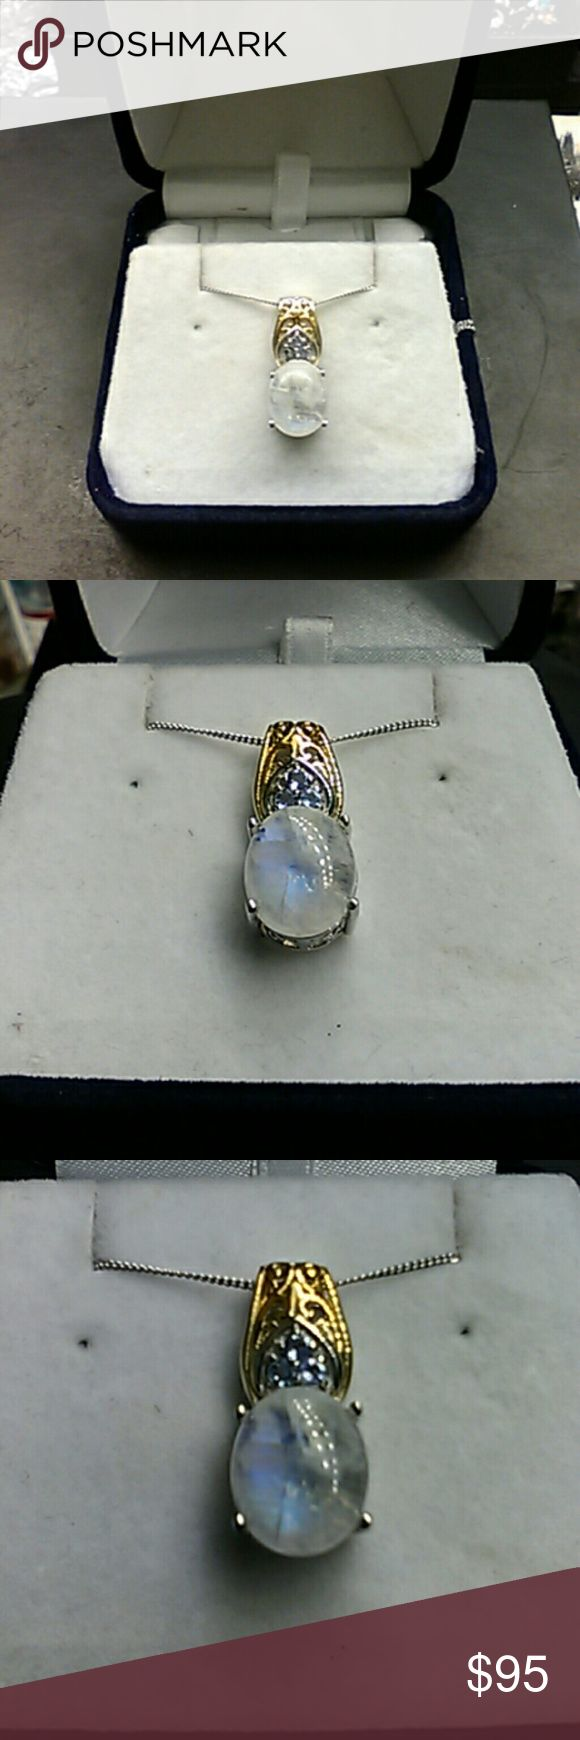 "6.75cts Genuine Moonstone & Tanzainte 14k/925 Retail Price:$359 Flash Sale:$85 Absolutely gorgeous Moonstone & Tanzainte pendant. 6.75 carats total weight. 14k gold & Platinum over solid 925 sterling silver artisan pendant with 20"" sterling chain. estate 925 Jewelry Necklaces"